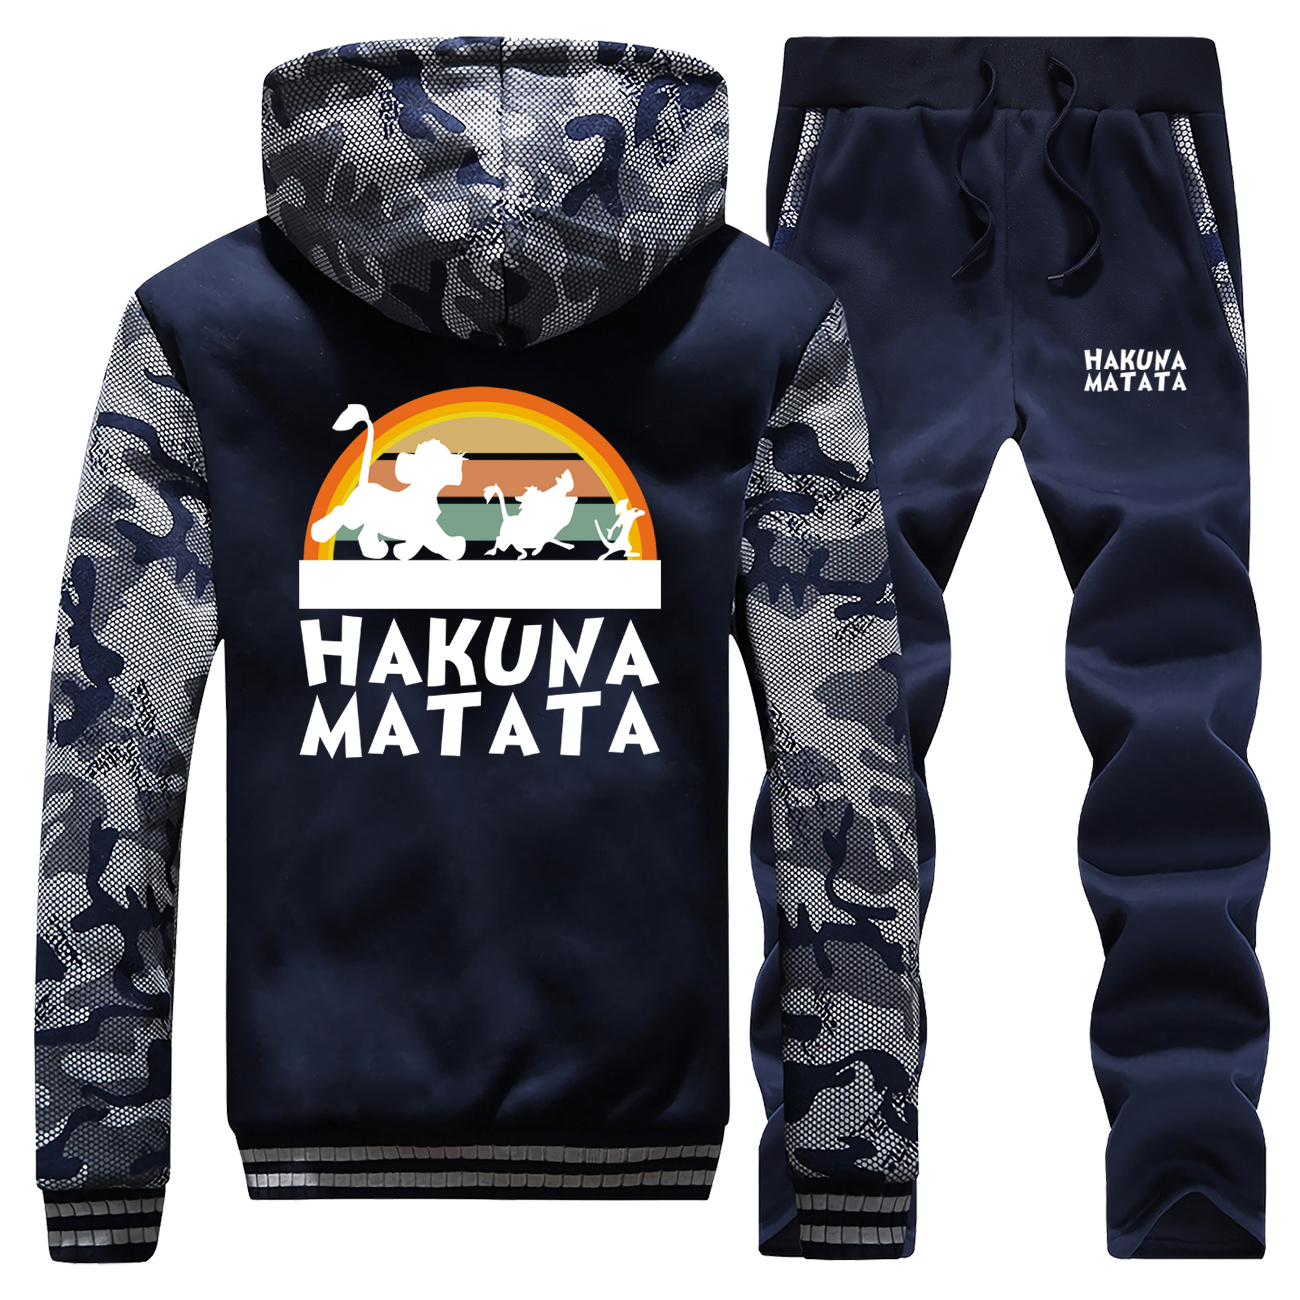 The Lion King Men's Sets Hakuna Matata Anime Men Camo Jacket 2019 Cartoon Men's Sportswear Winter Warm Tracksuit Fashion Jackets